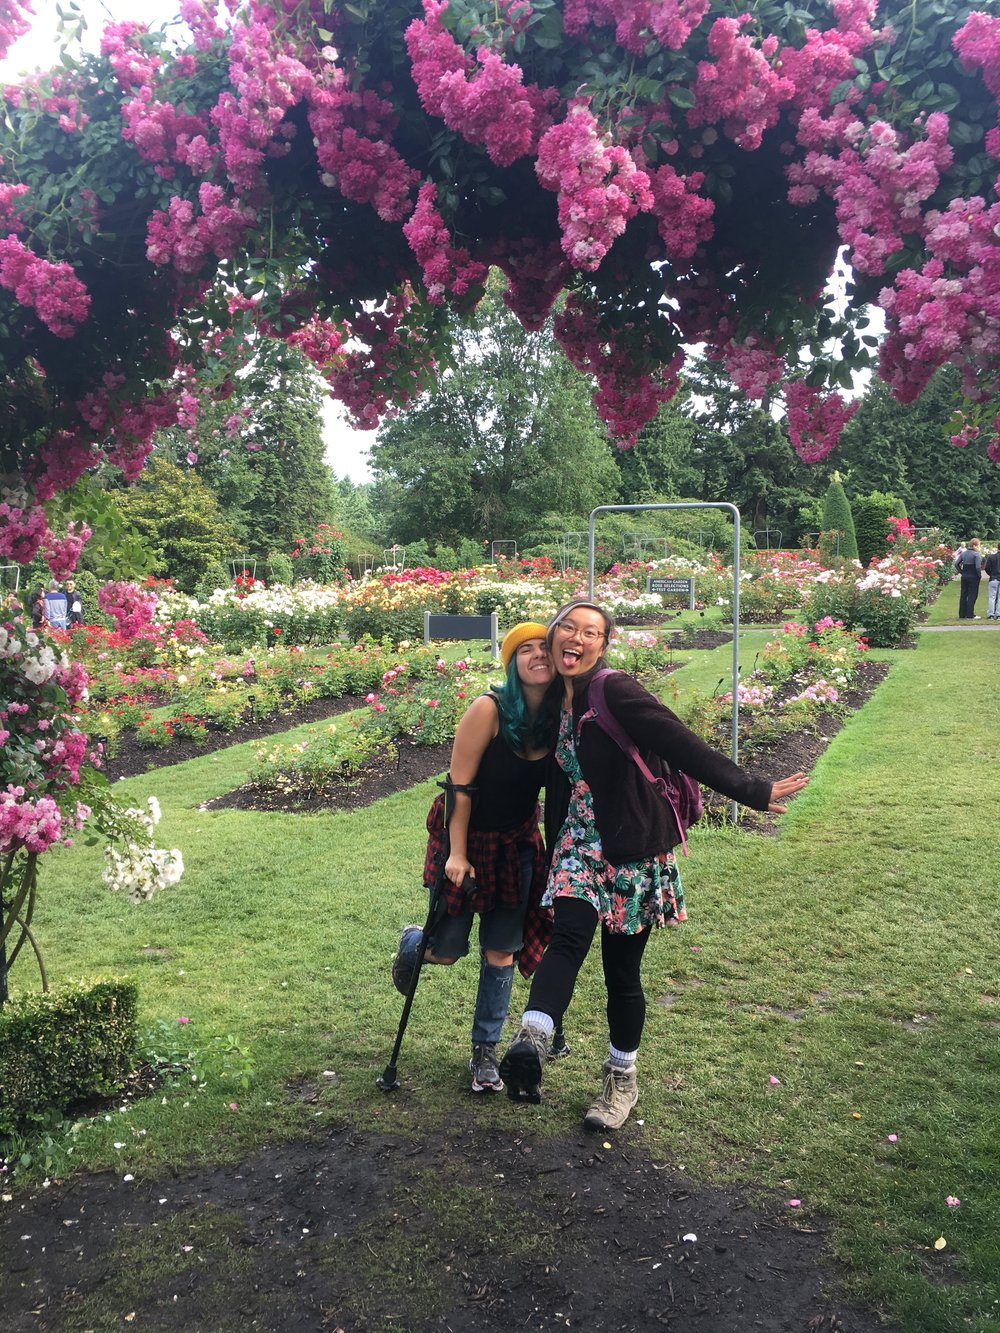 Photo Description: Eliana, still using her crutches, poses with a third vanmate in front of a flowering tree. Both women are laughing and kicking up a leg.